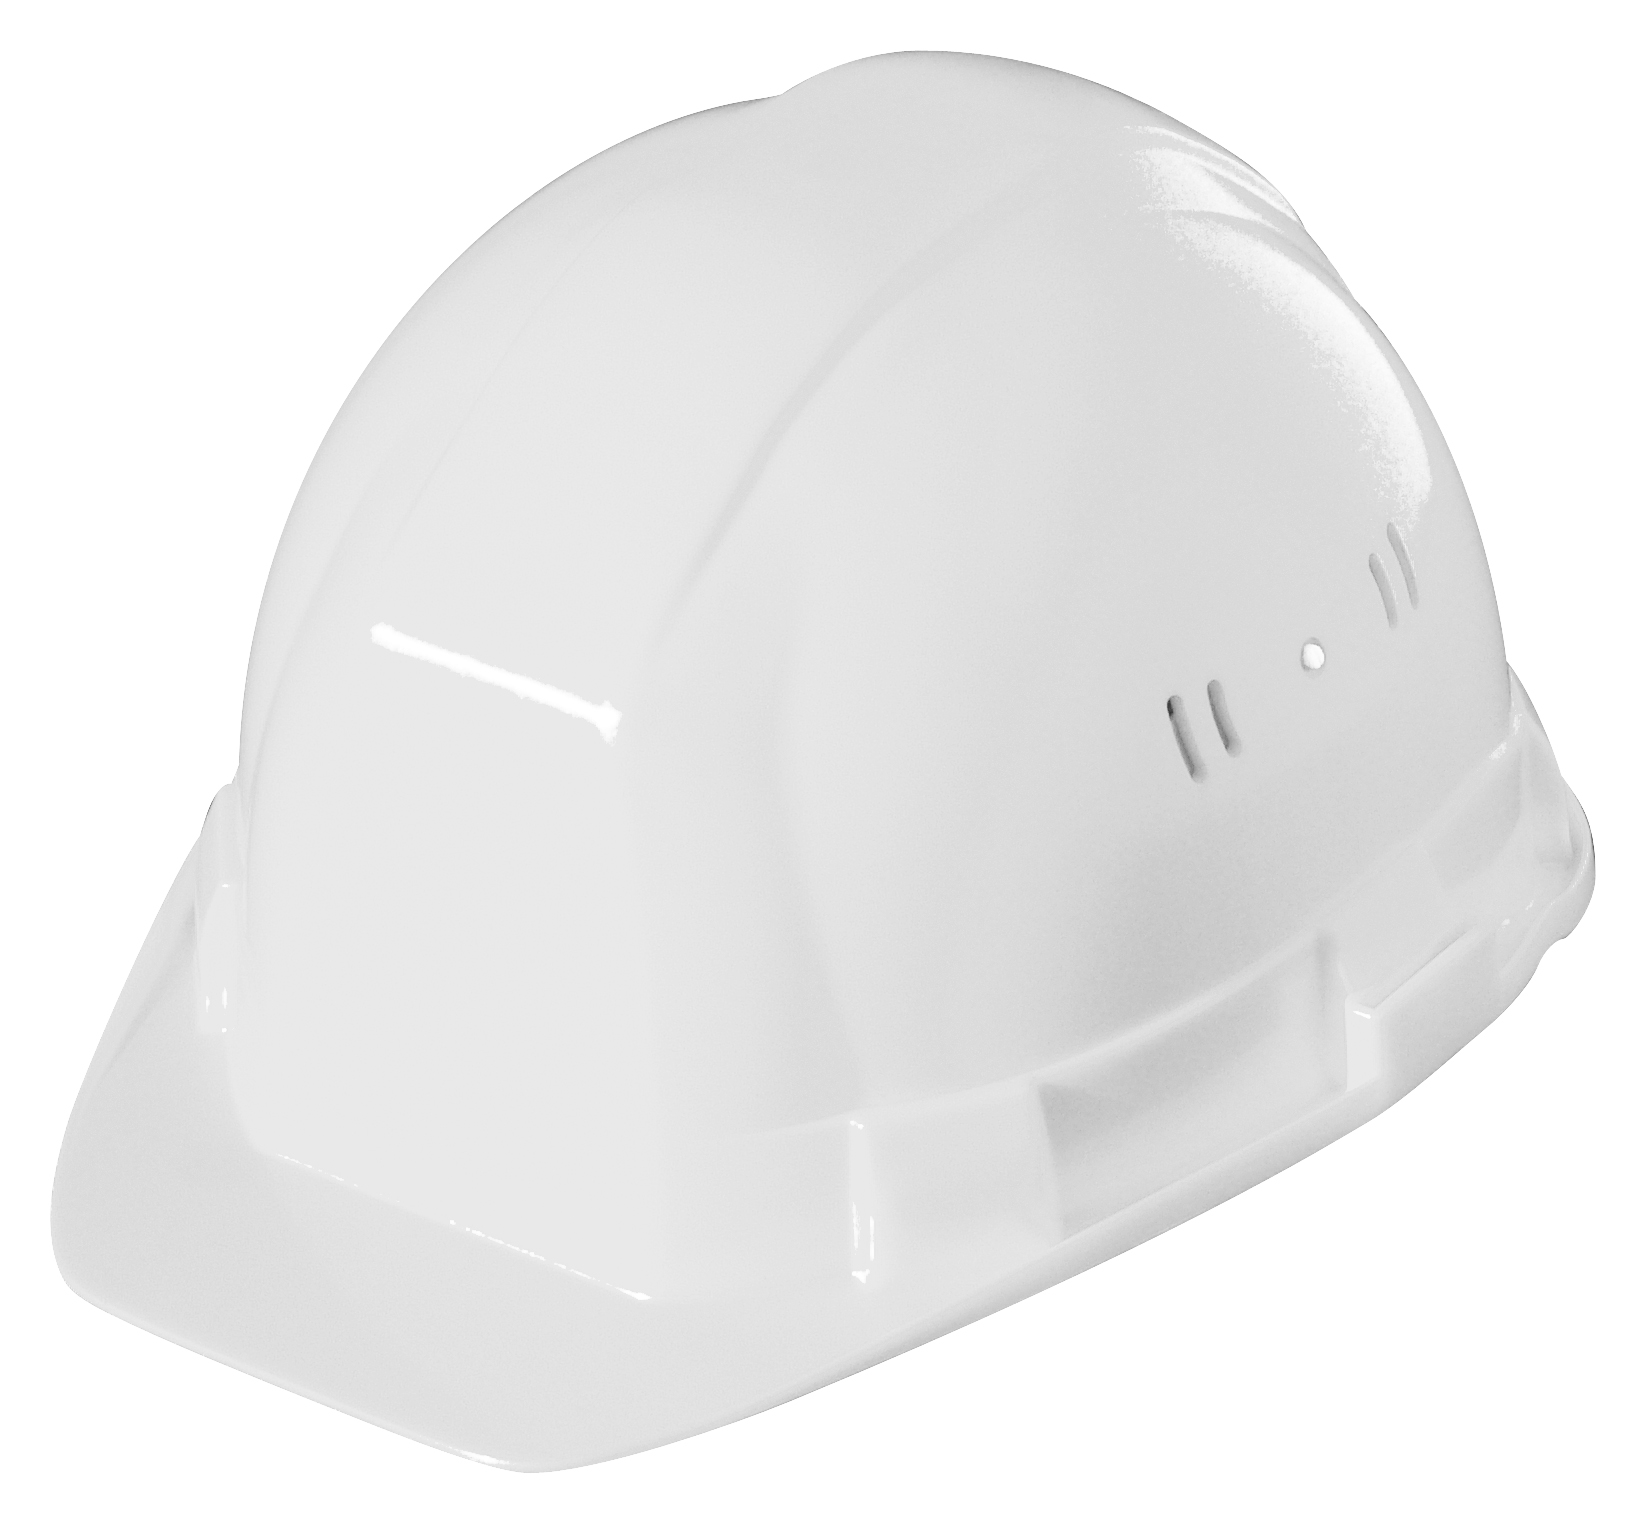 Casque de protection OCEANIC®II RB40 blanc TALIAPLAST